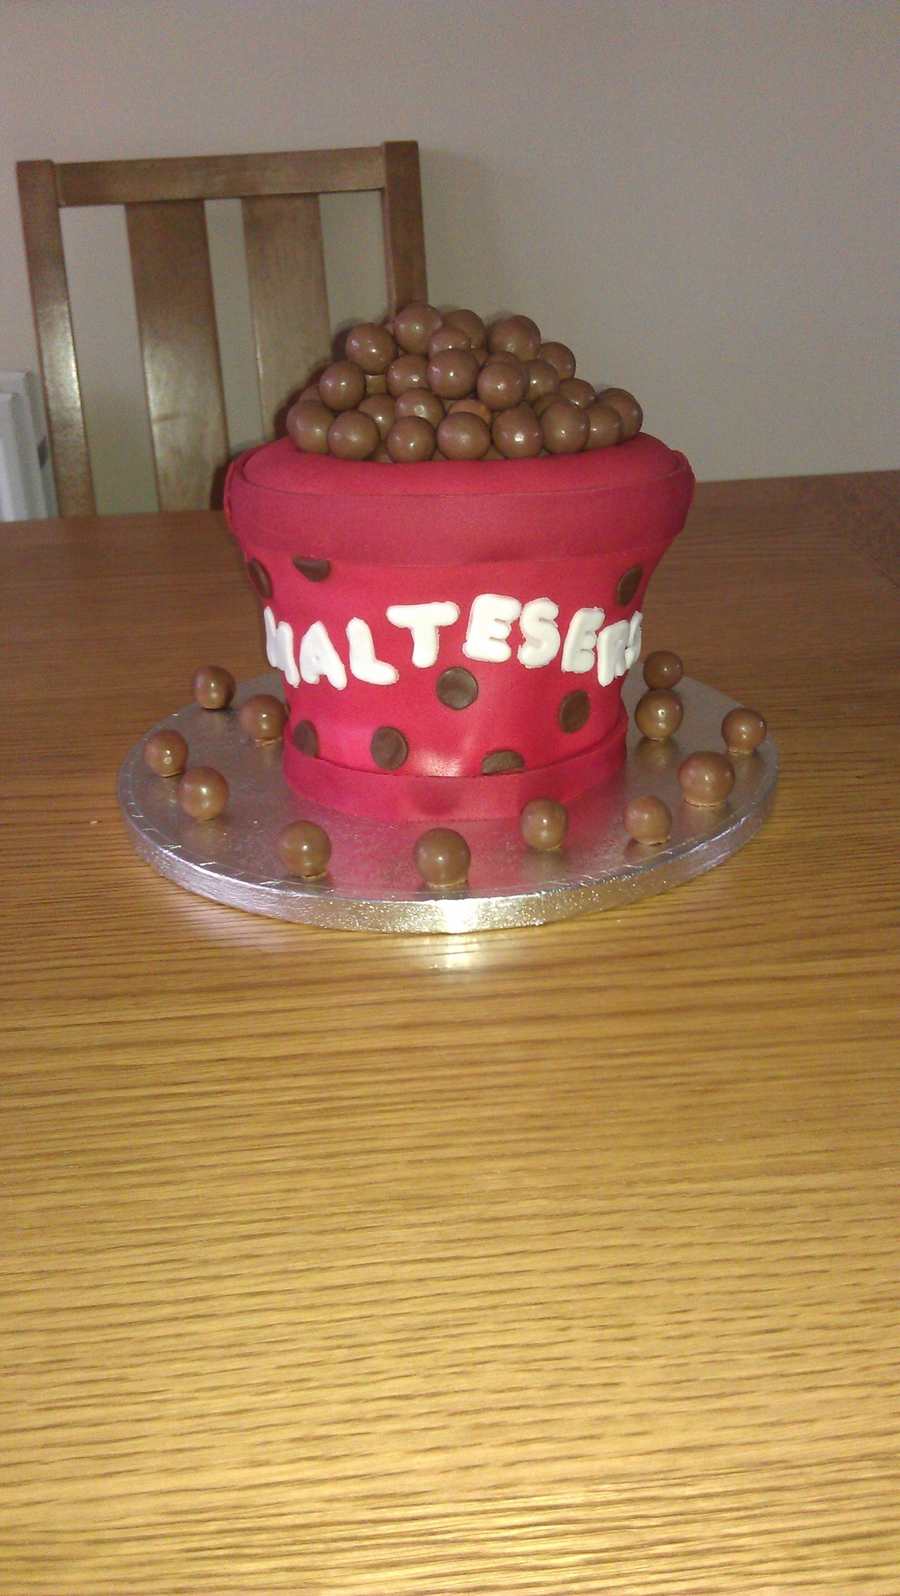 Bucket Of Maltesers Anyone?  on Cake Central